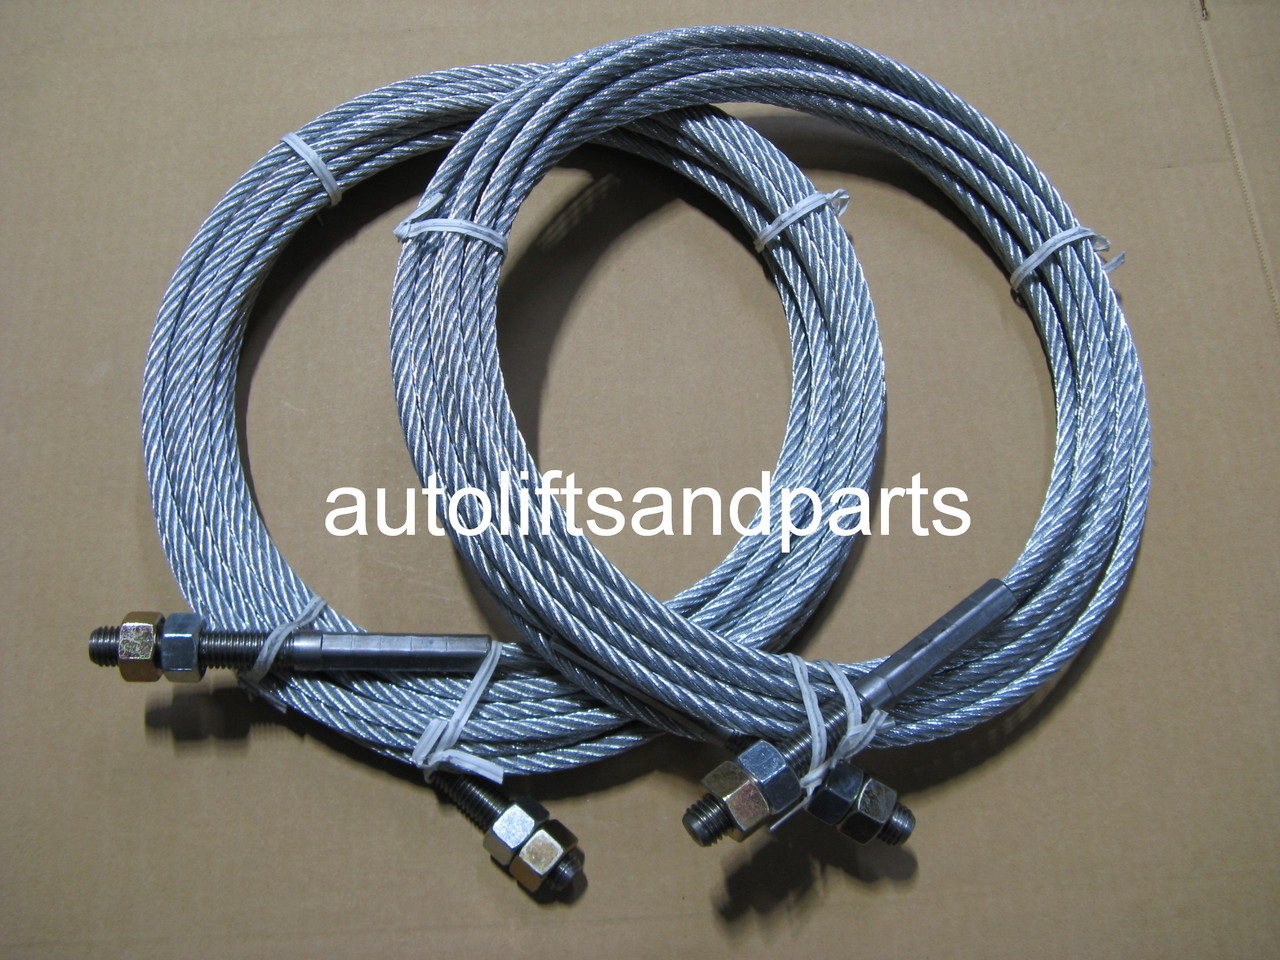 JSJ5-04-00CH Equalizer Cables Pair (2) for Challenger E-10 Lift